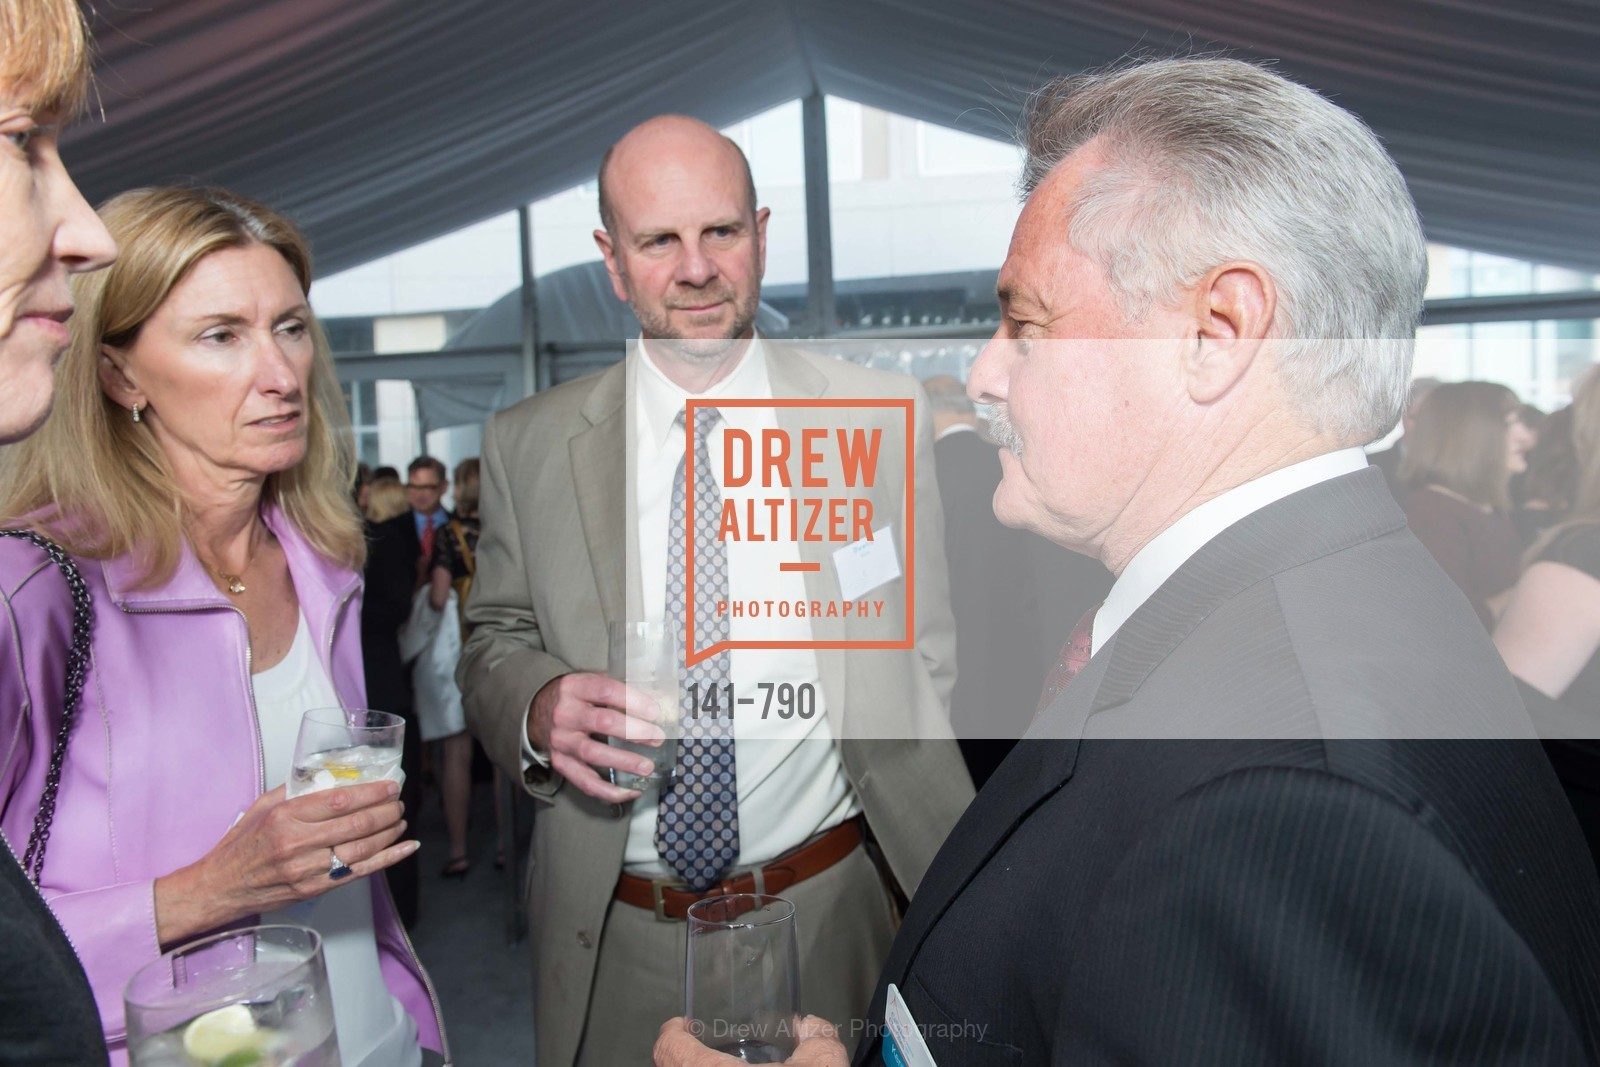 Extras, Post War and Contemporary Preview at HEDGE GALLERY, April 15th, 2015, Photo,Drew Altizer, Drew Altizer Photography, full-service agency, private events, San Francisco photographer, photographer california